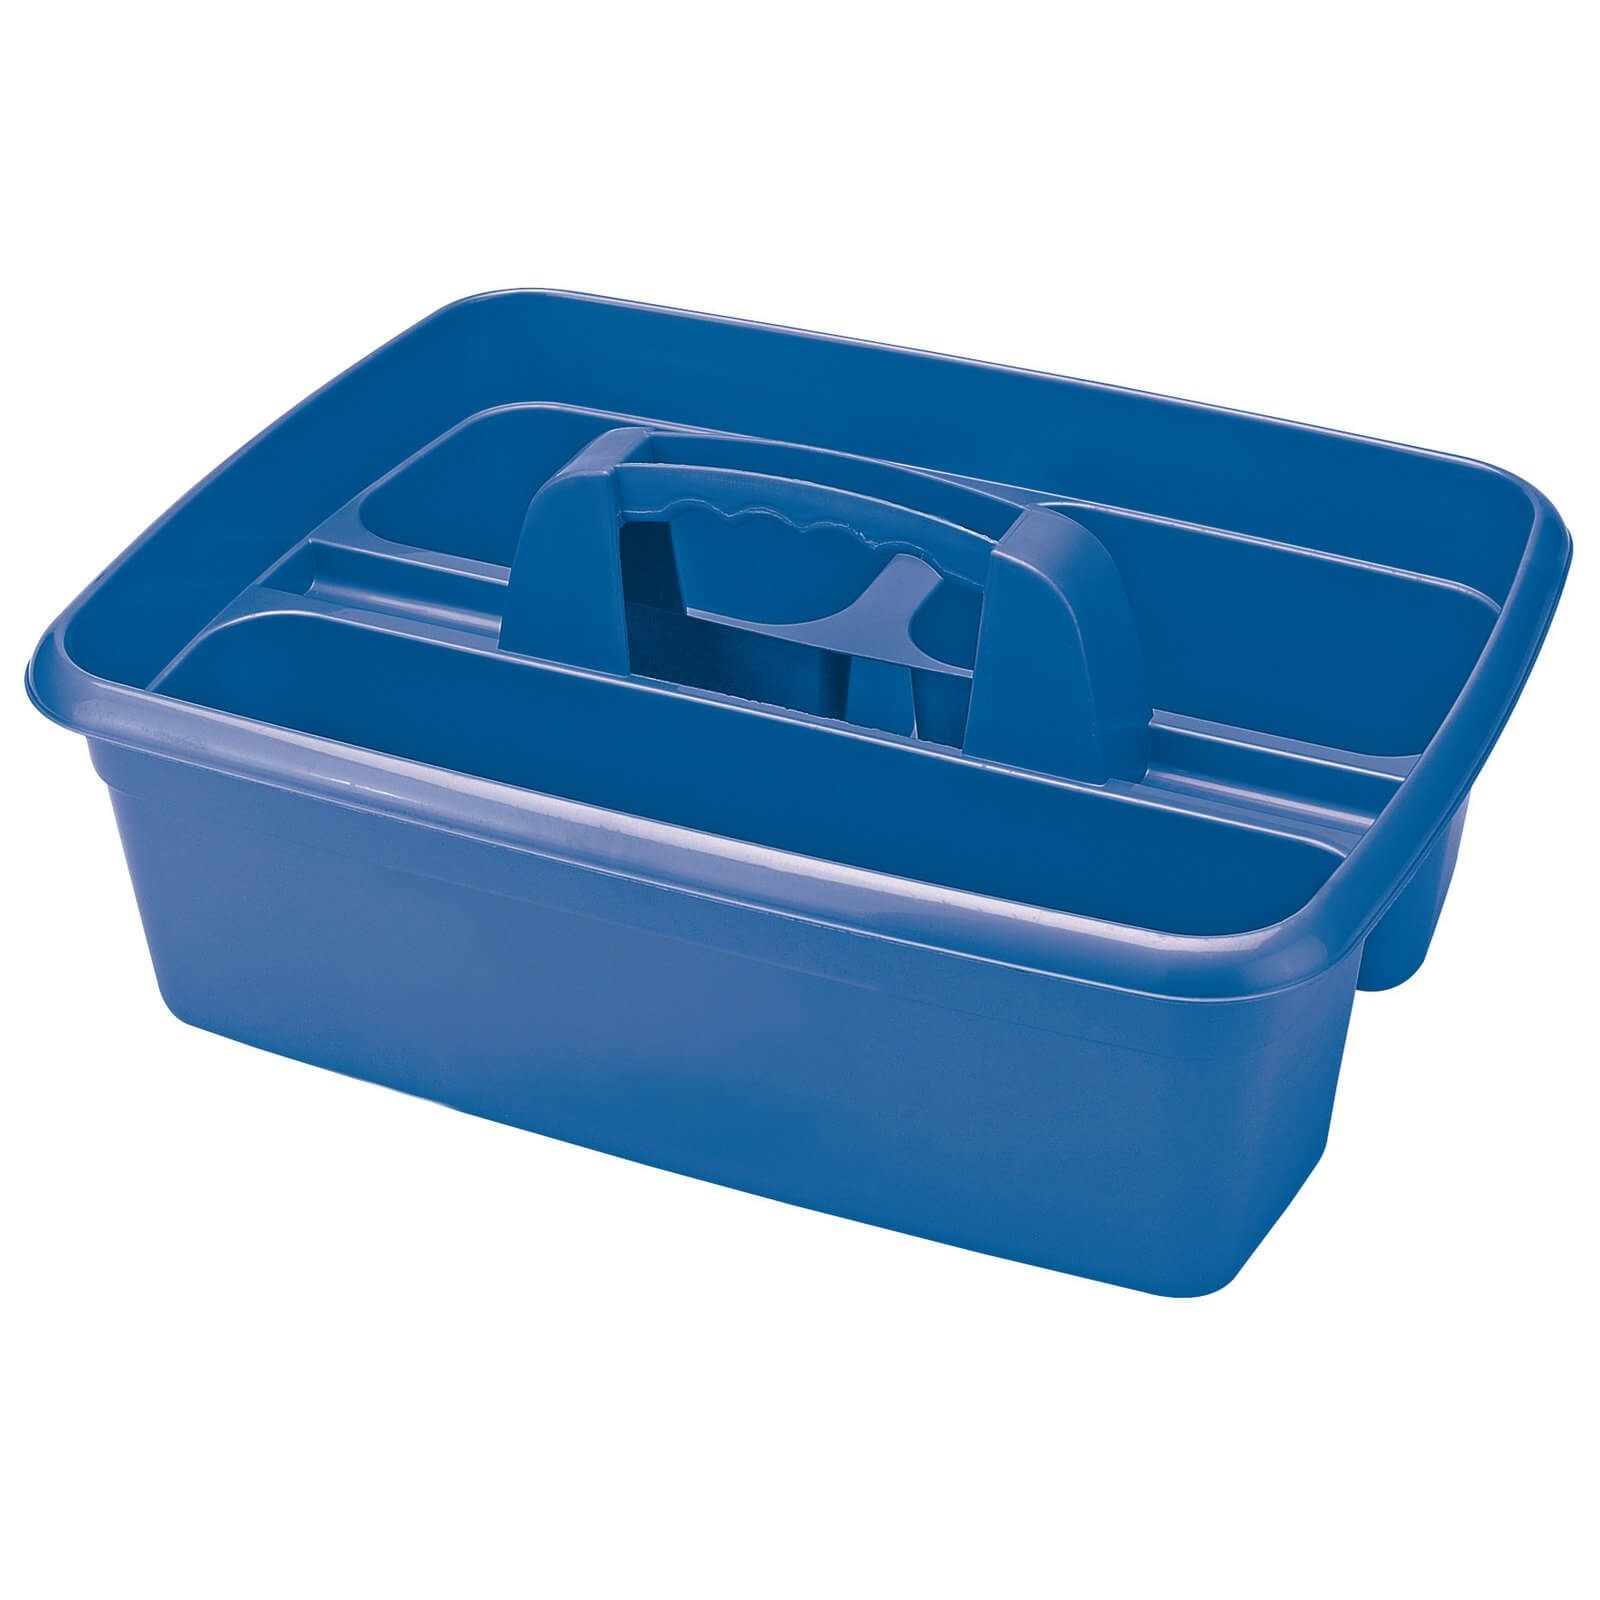 Draper 3 Compartment Tool Storage Tote Tray / Cleaning Caddy